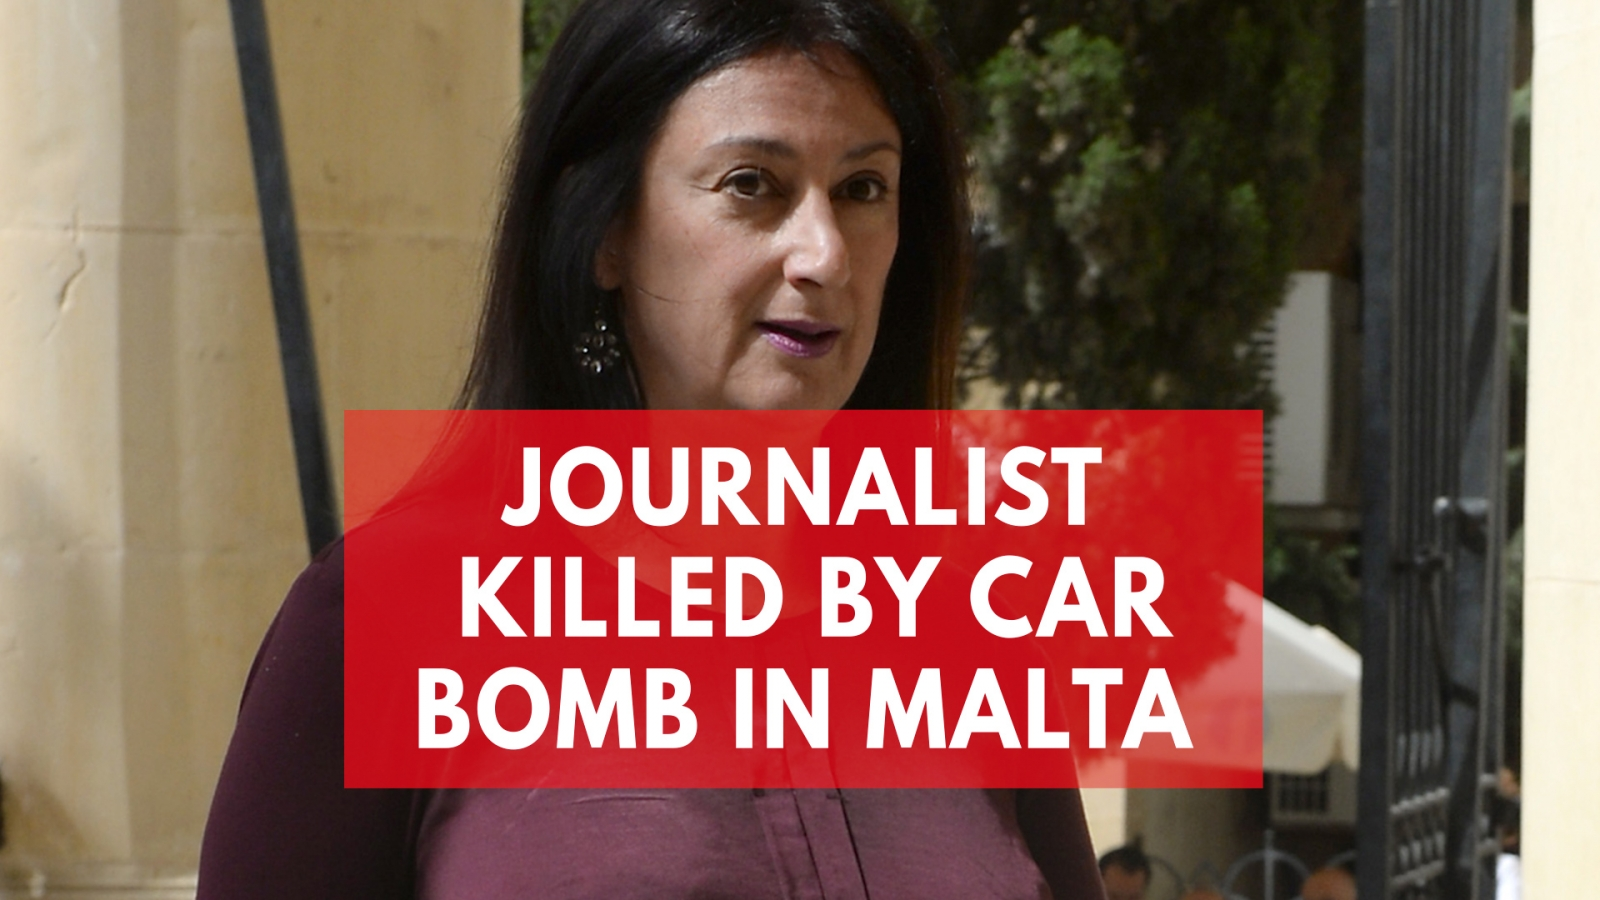 prominent-journalist-daphne-caruana-galizia-dies-in-car-bomb-attack-in-malta